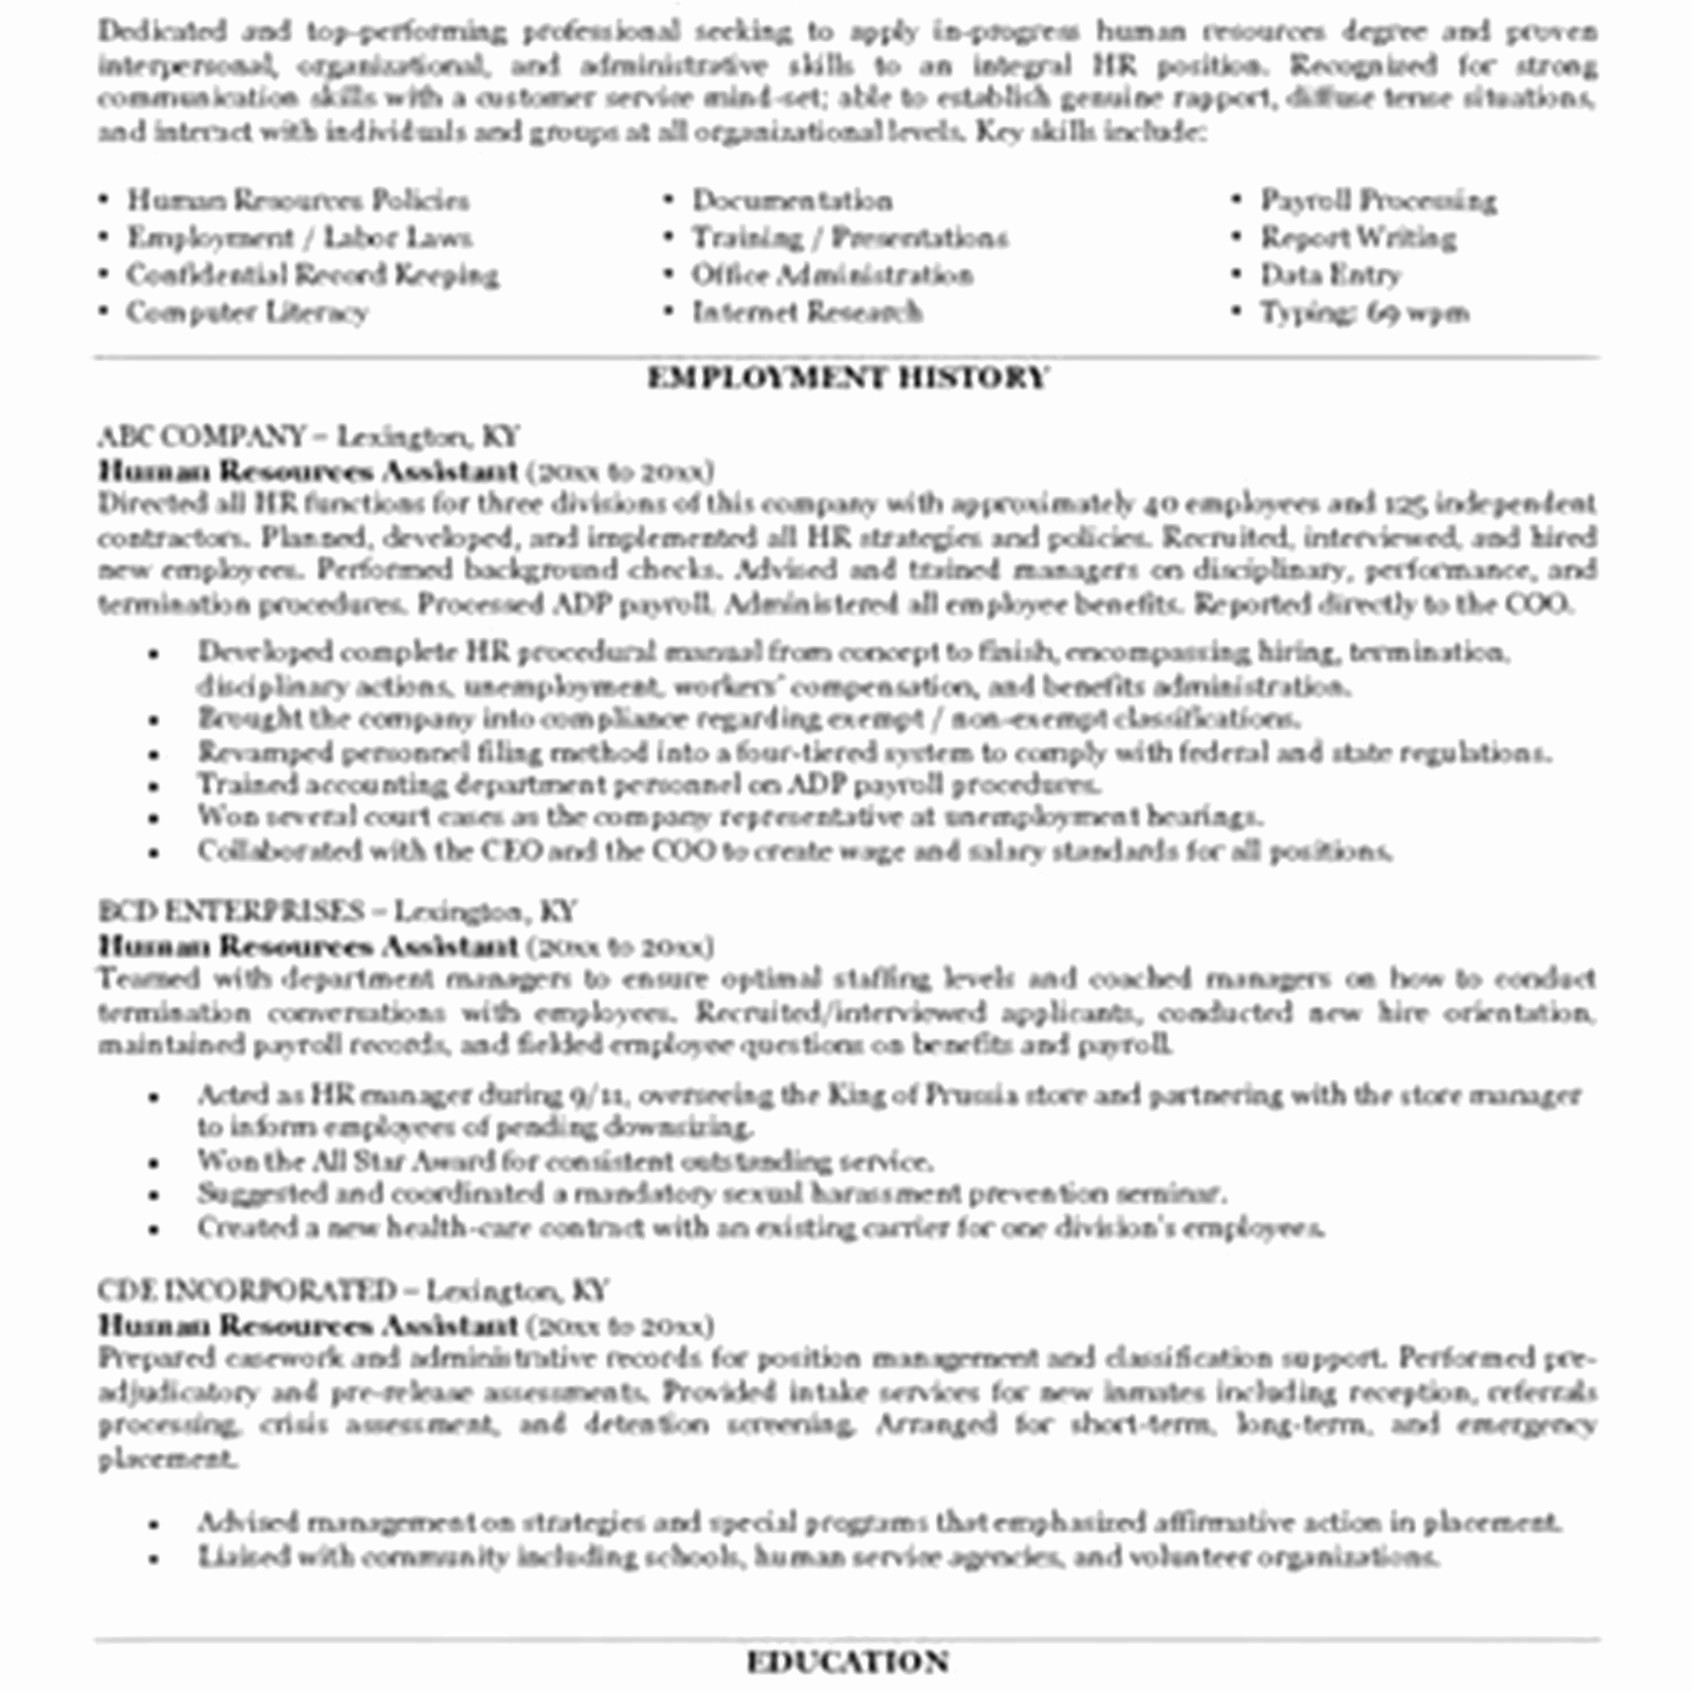 Human Resources Manager Resume - Human Resource Manager Resume New Sample Human Resources Manager